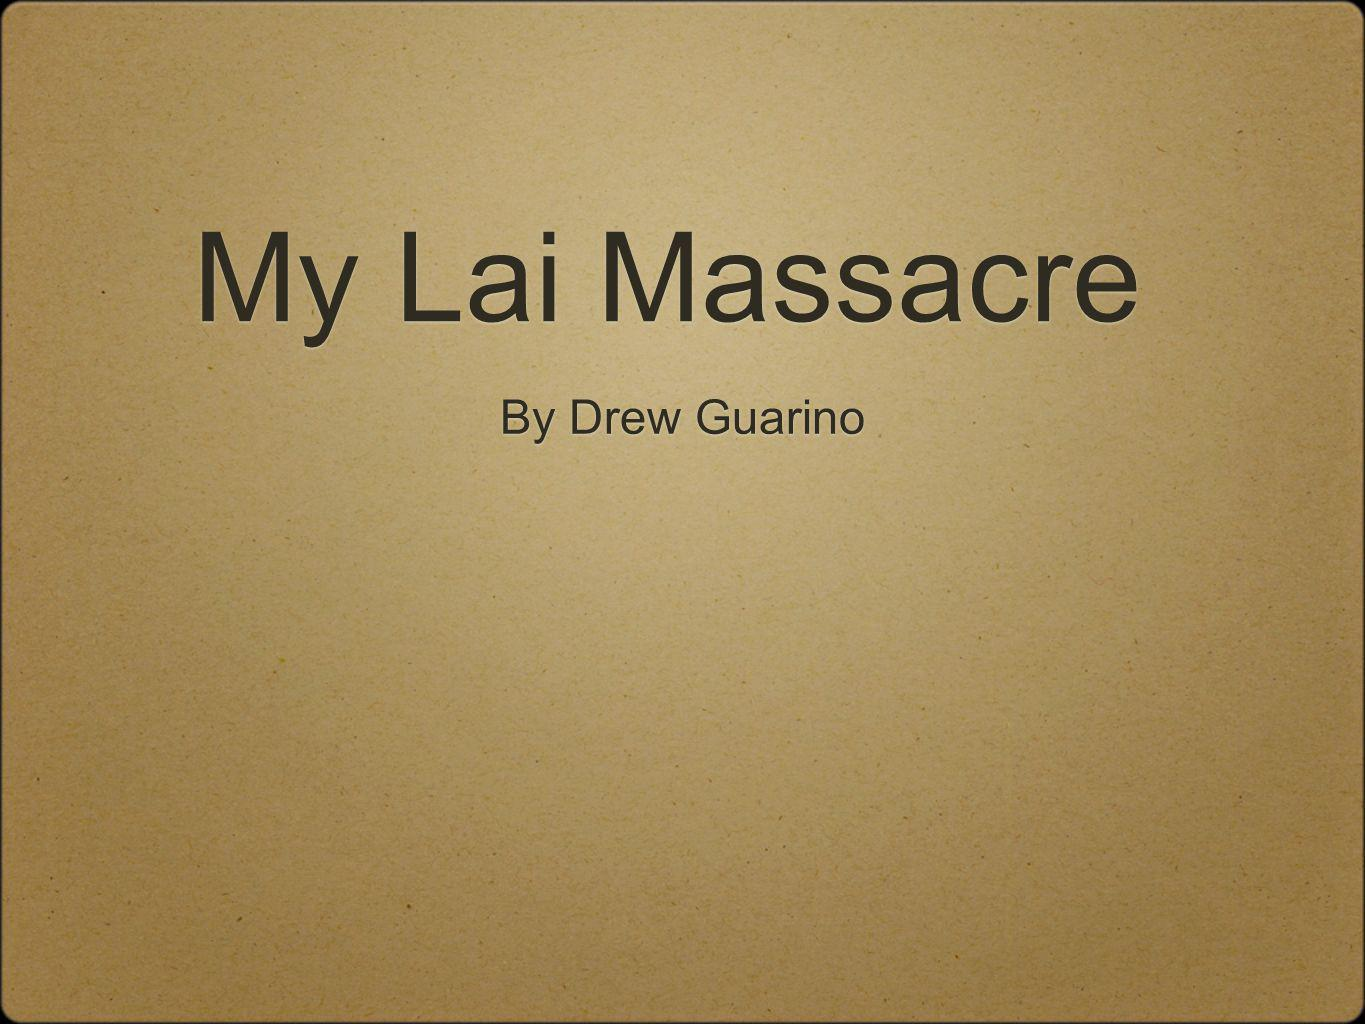 My Lai Massacre By Drew Guarino